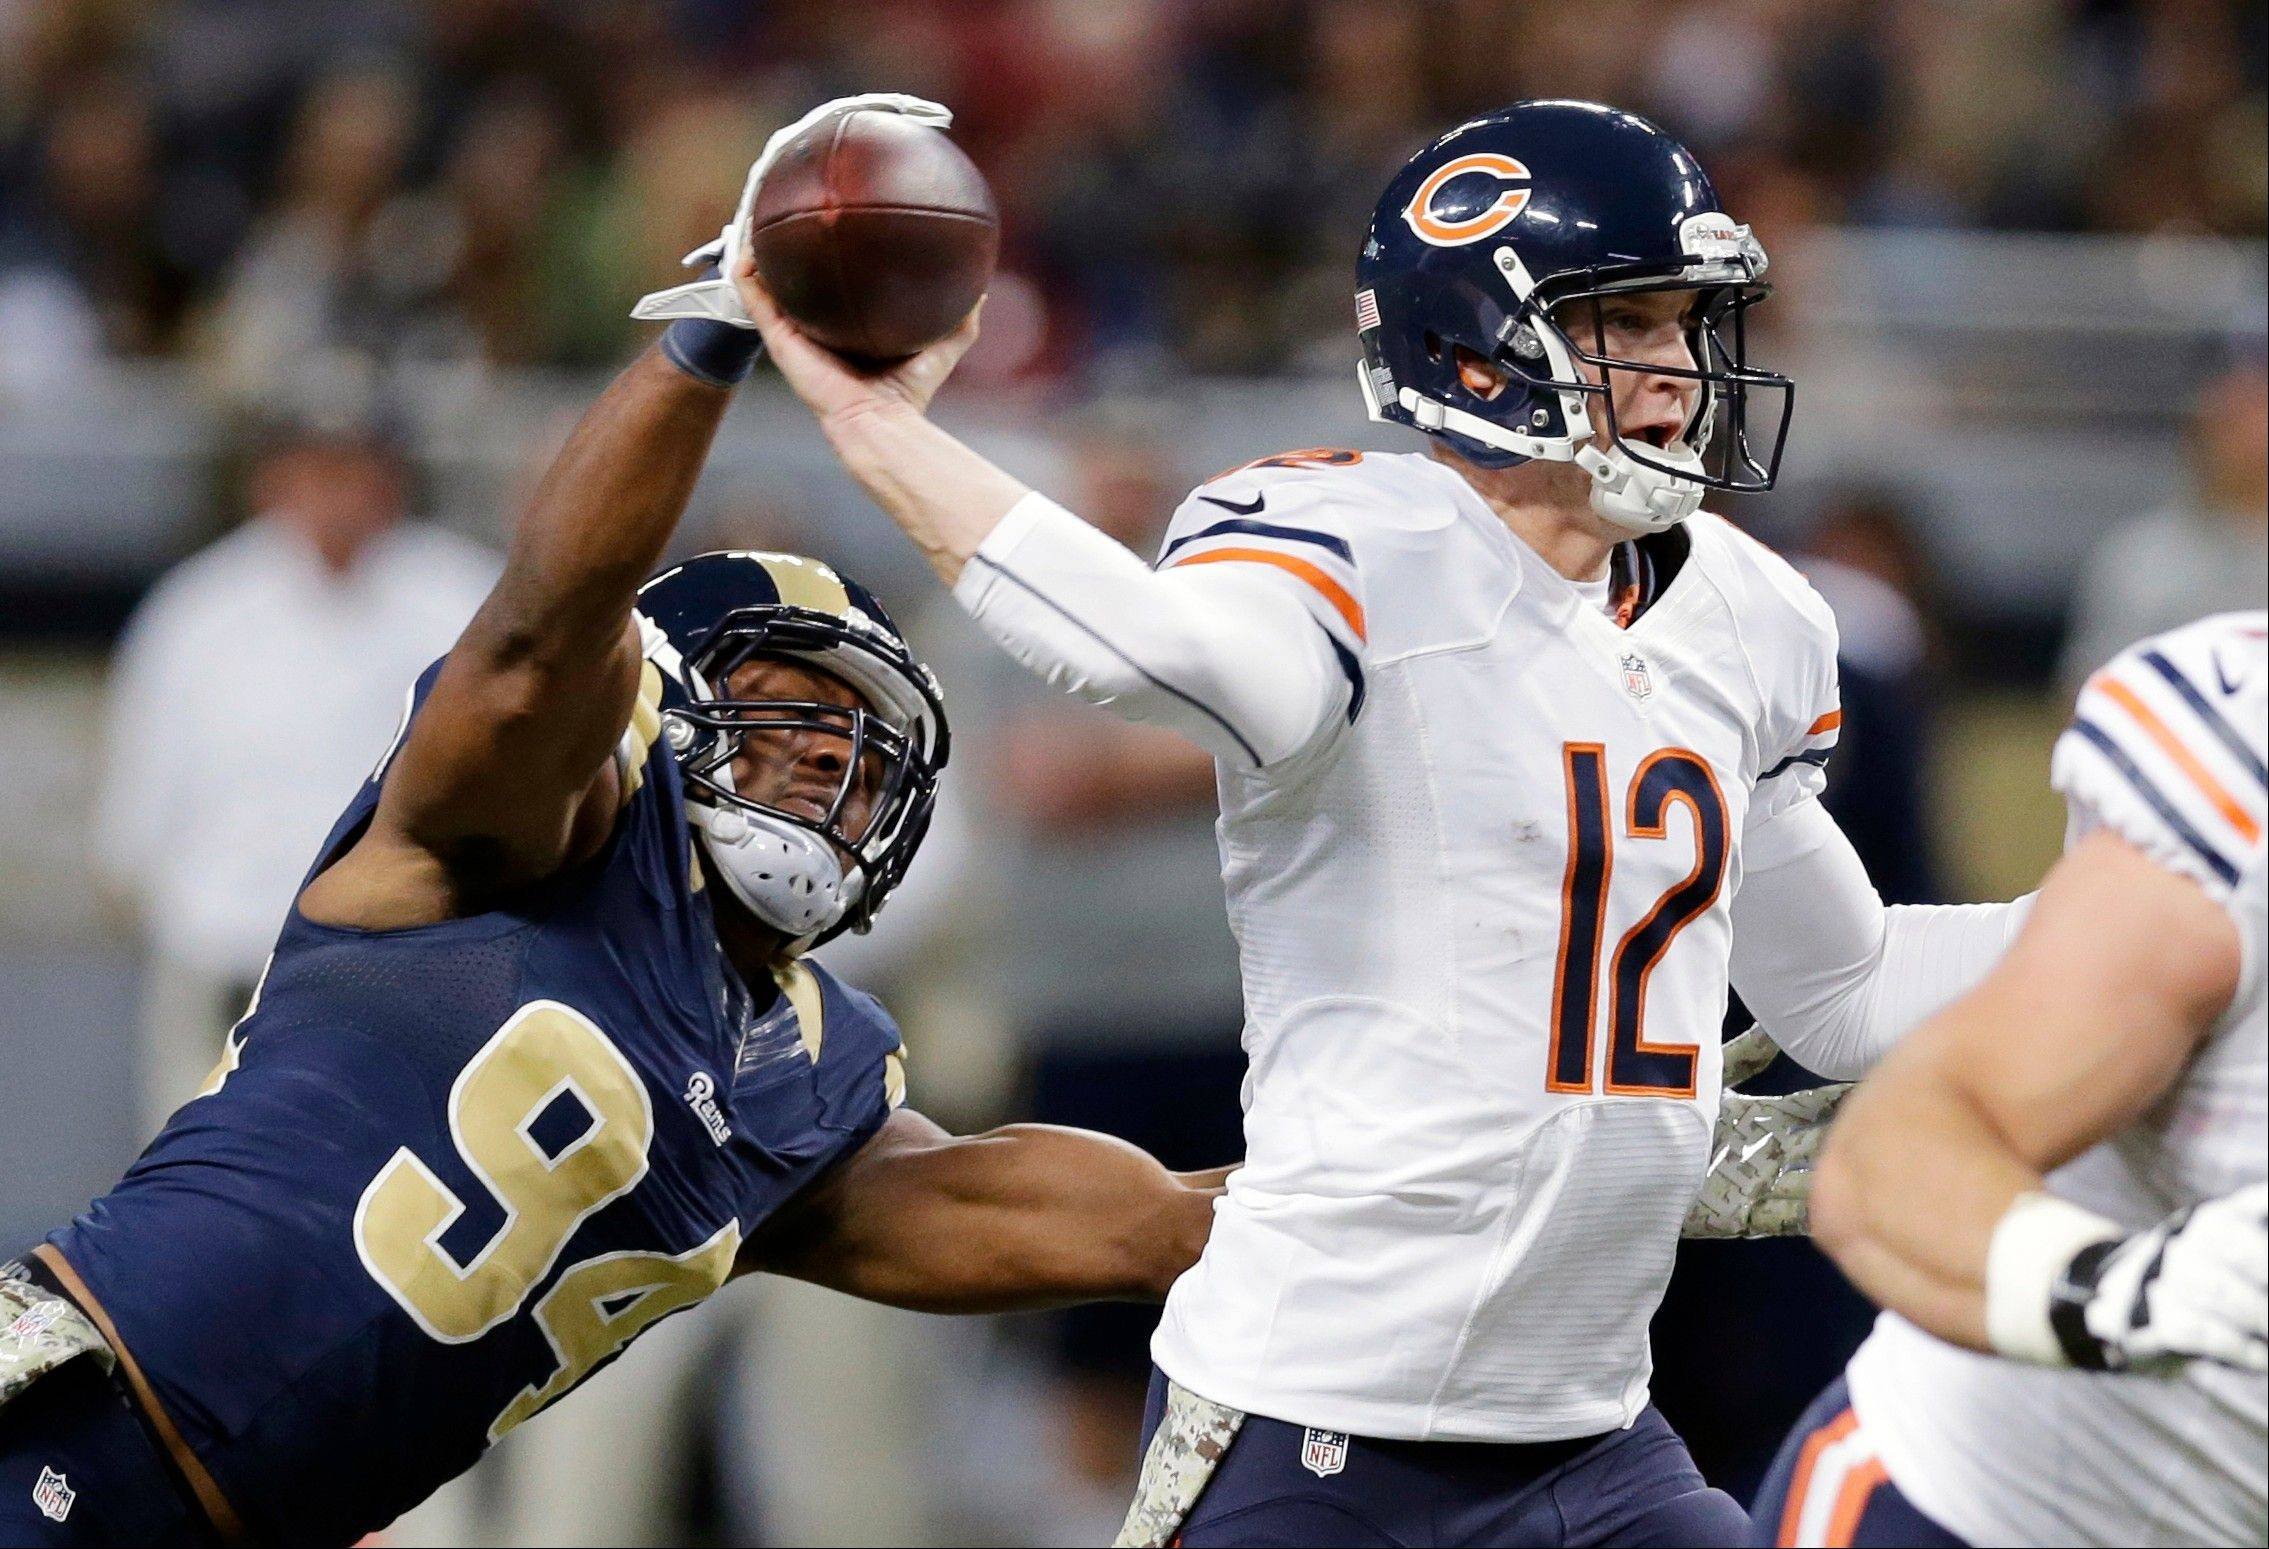 Rams defensive end Robert Quinn, left, gets his hand on the ball as Bears quarterback Josh McCown throws during the first quarter Sunday in St. Louis. McCown threw for 352 yards but let the Bears to just 21 points.